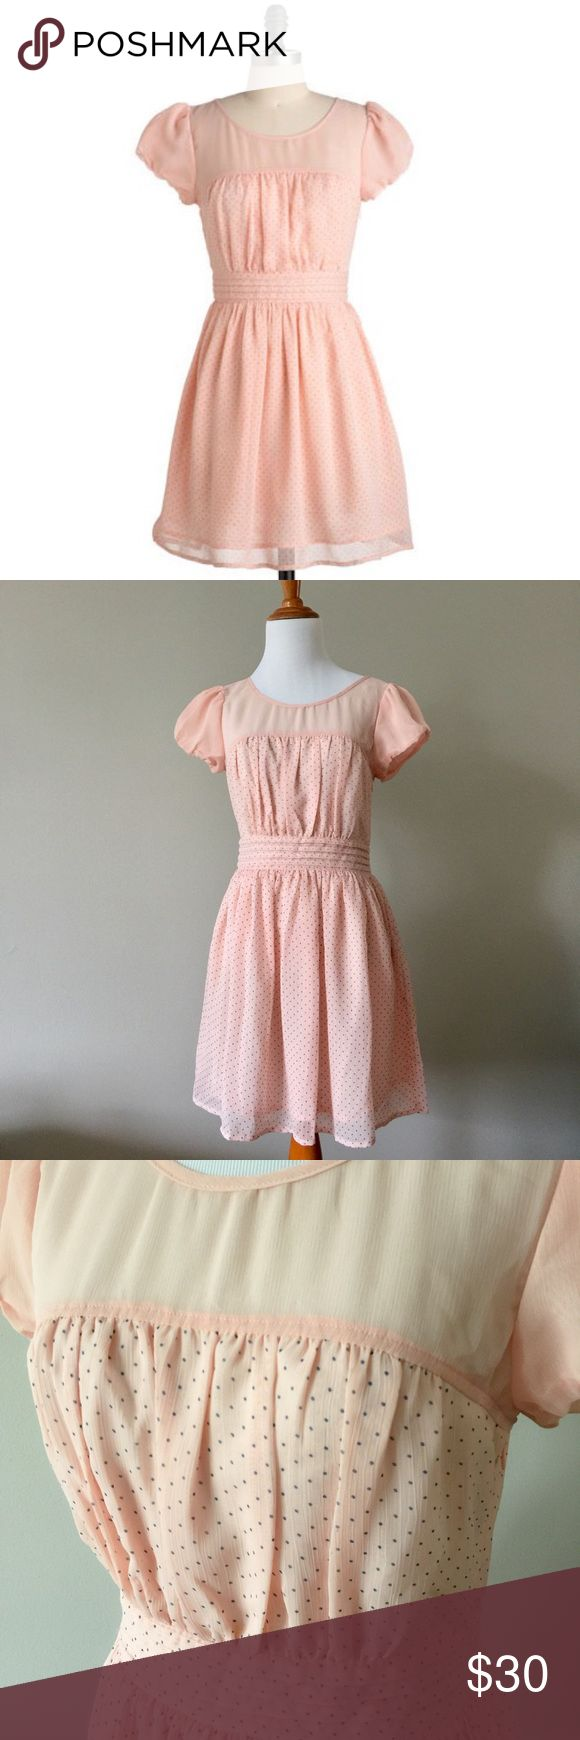 """NWOT ModCloth Holiday Weekend Dress in Saturday NWOT. Never worn. Cap sleeves. Side zip. Keyhole back opening. Lined chiffon fabric. Light pink with polka dot print. Brand: Moon Collection. 32"""" long from top shoulder. 15.5"""" across chest. 13.5"""" waistband. ModCloth Dresses Mini"""